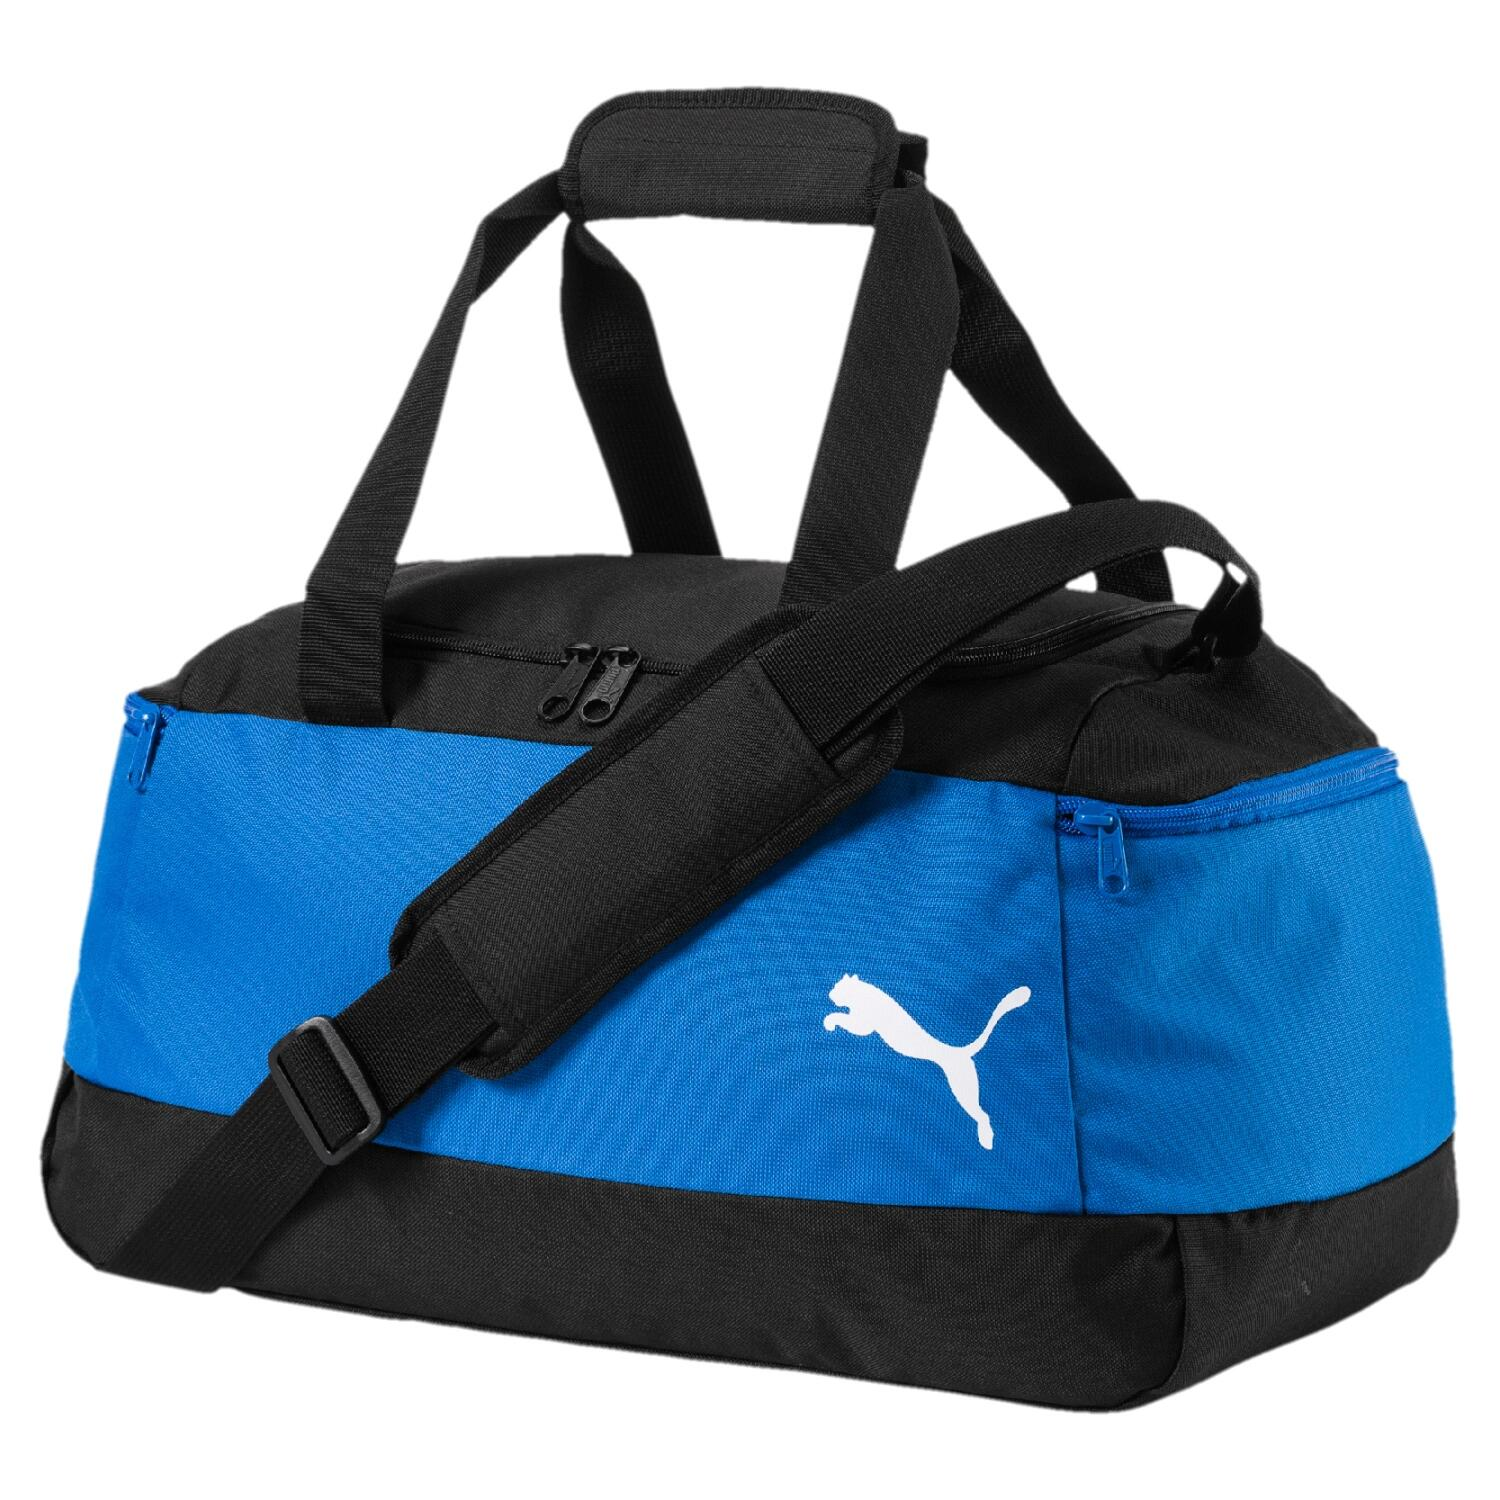 puma-teambag-pro-training-ii-s-sporttasche-farbe-0003-royal-blue-black-